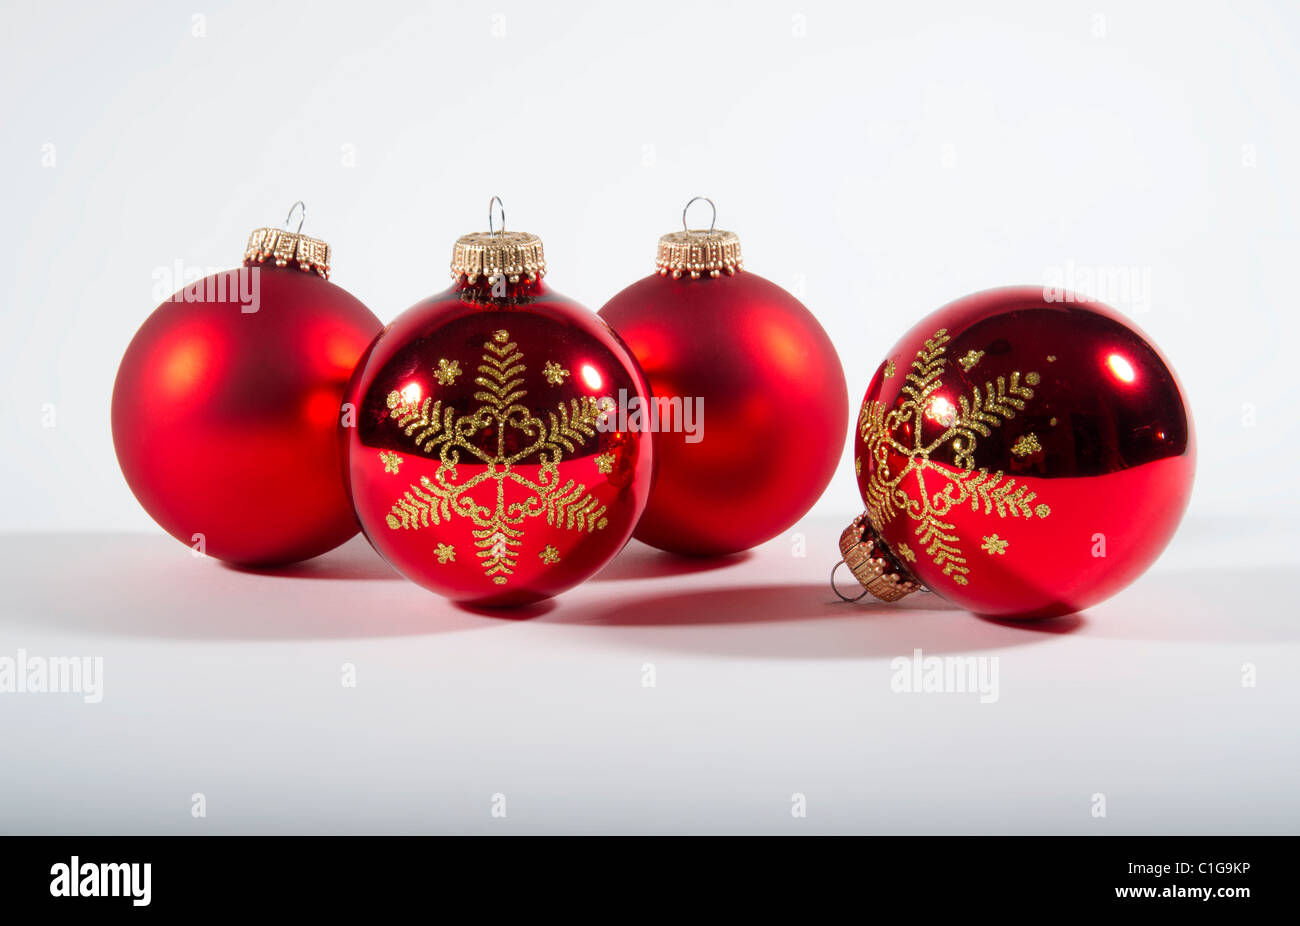 4 red christmas tree baubles christmas decorations pair of satin and 2 shiny with gold